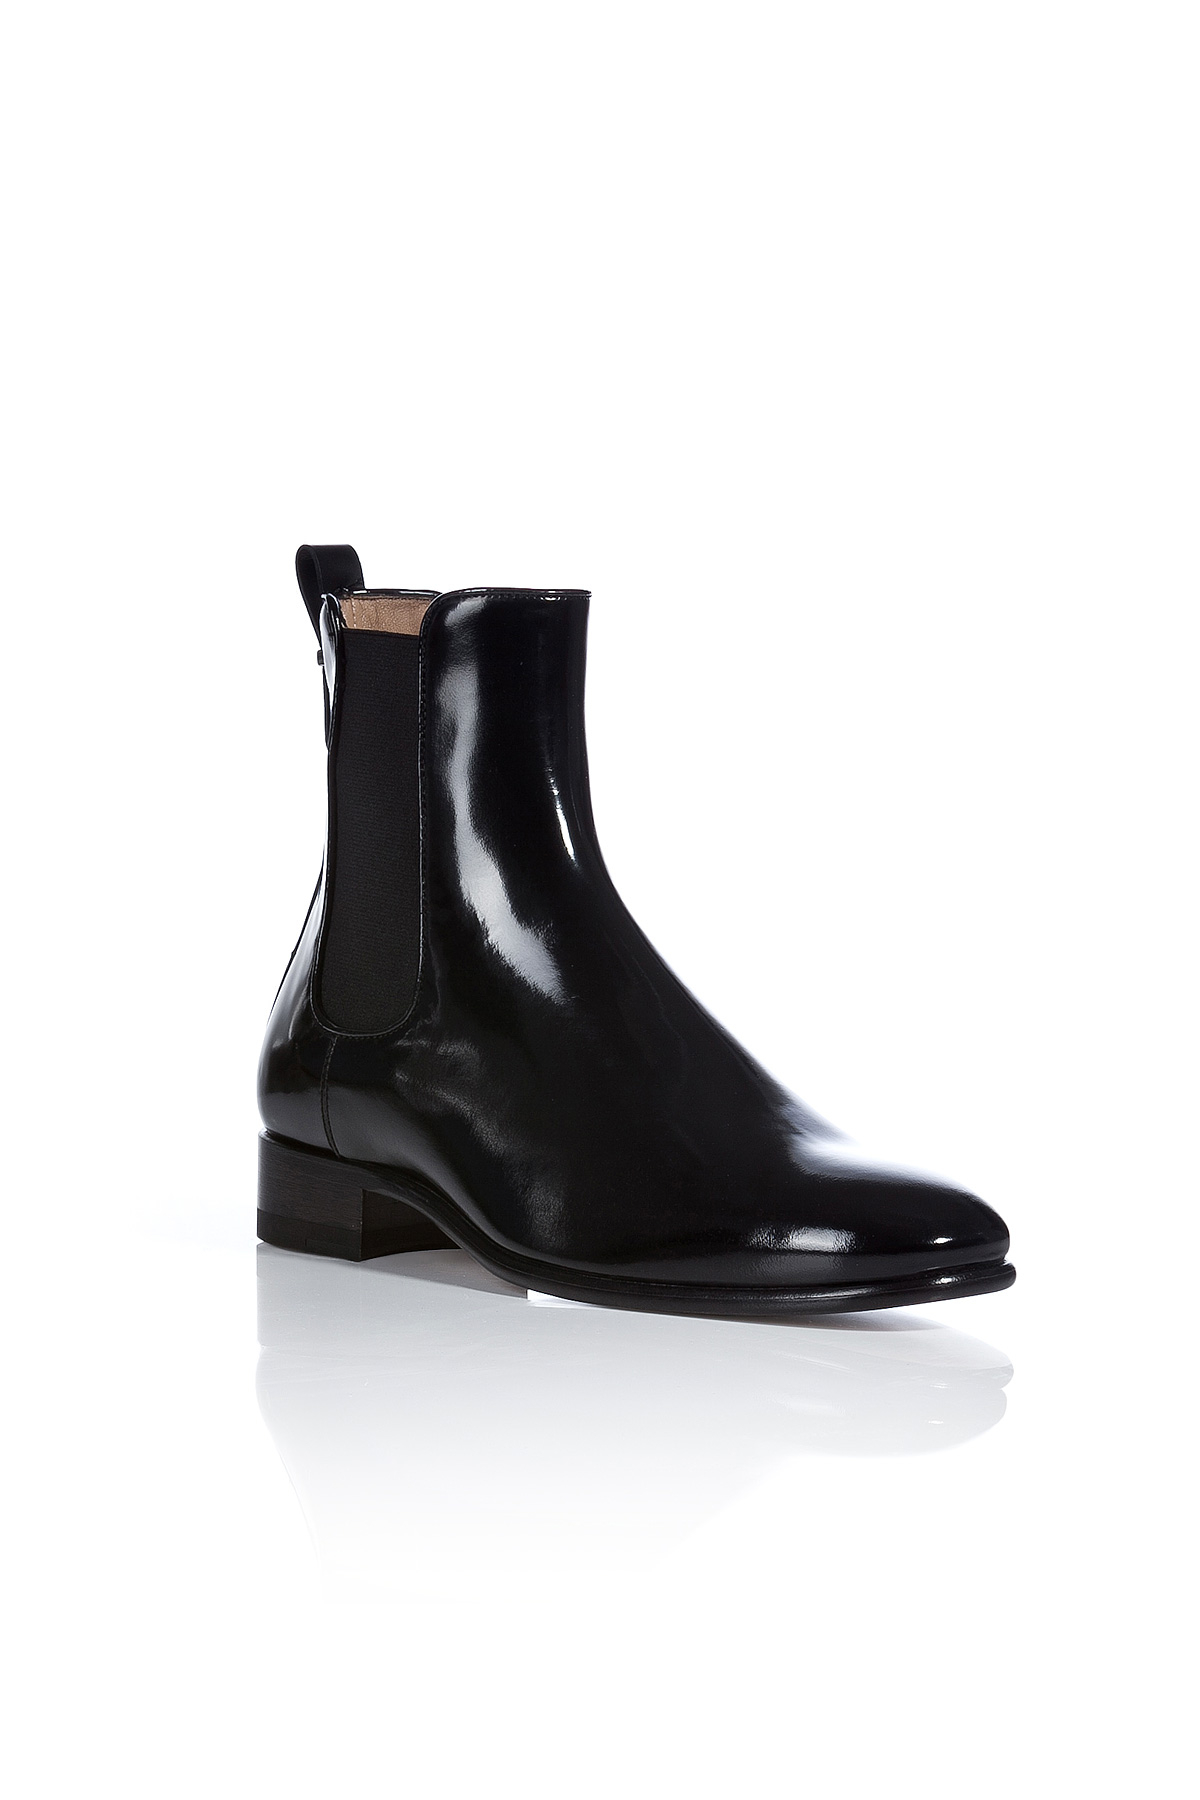 ferragamo patent leather nagoya chelsea boots black in